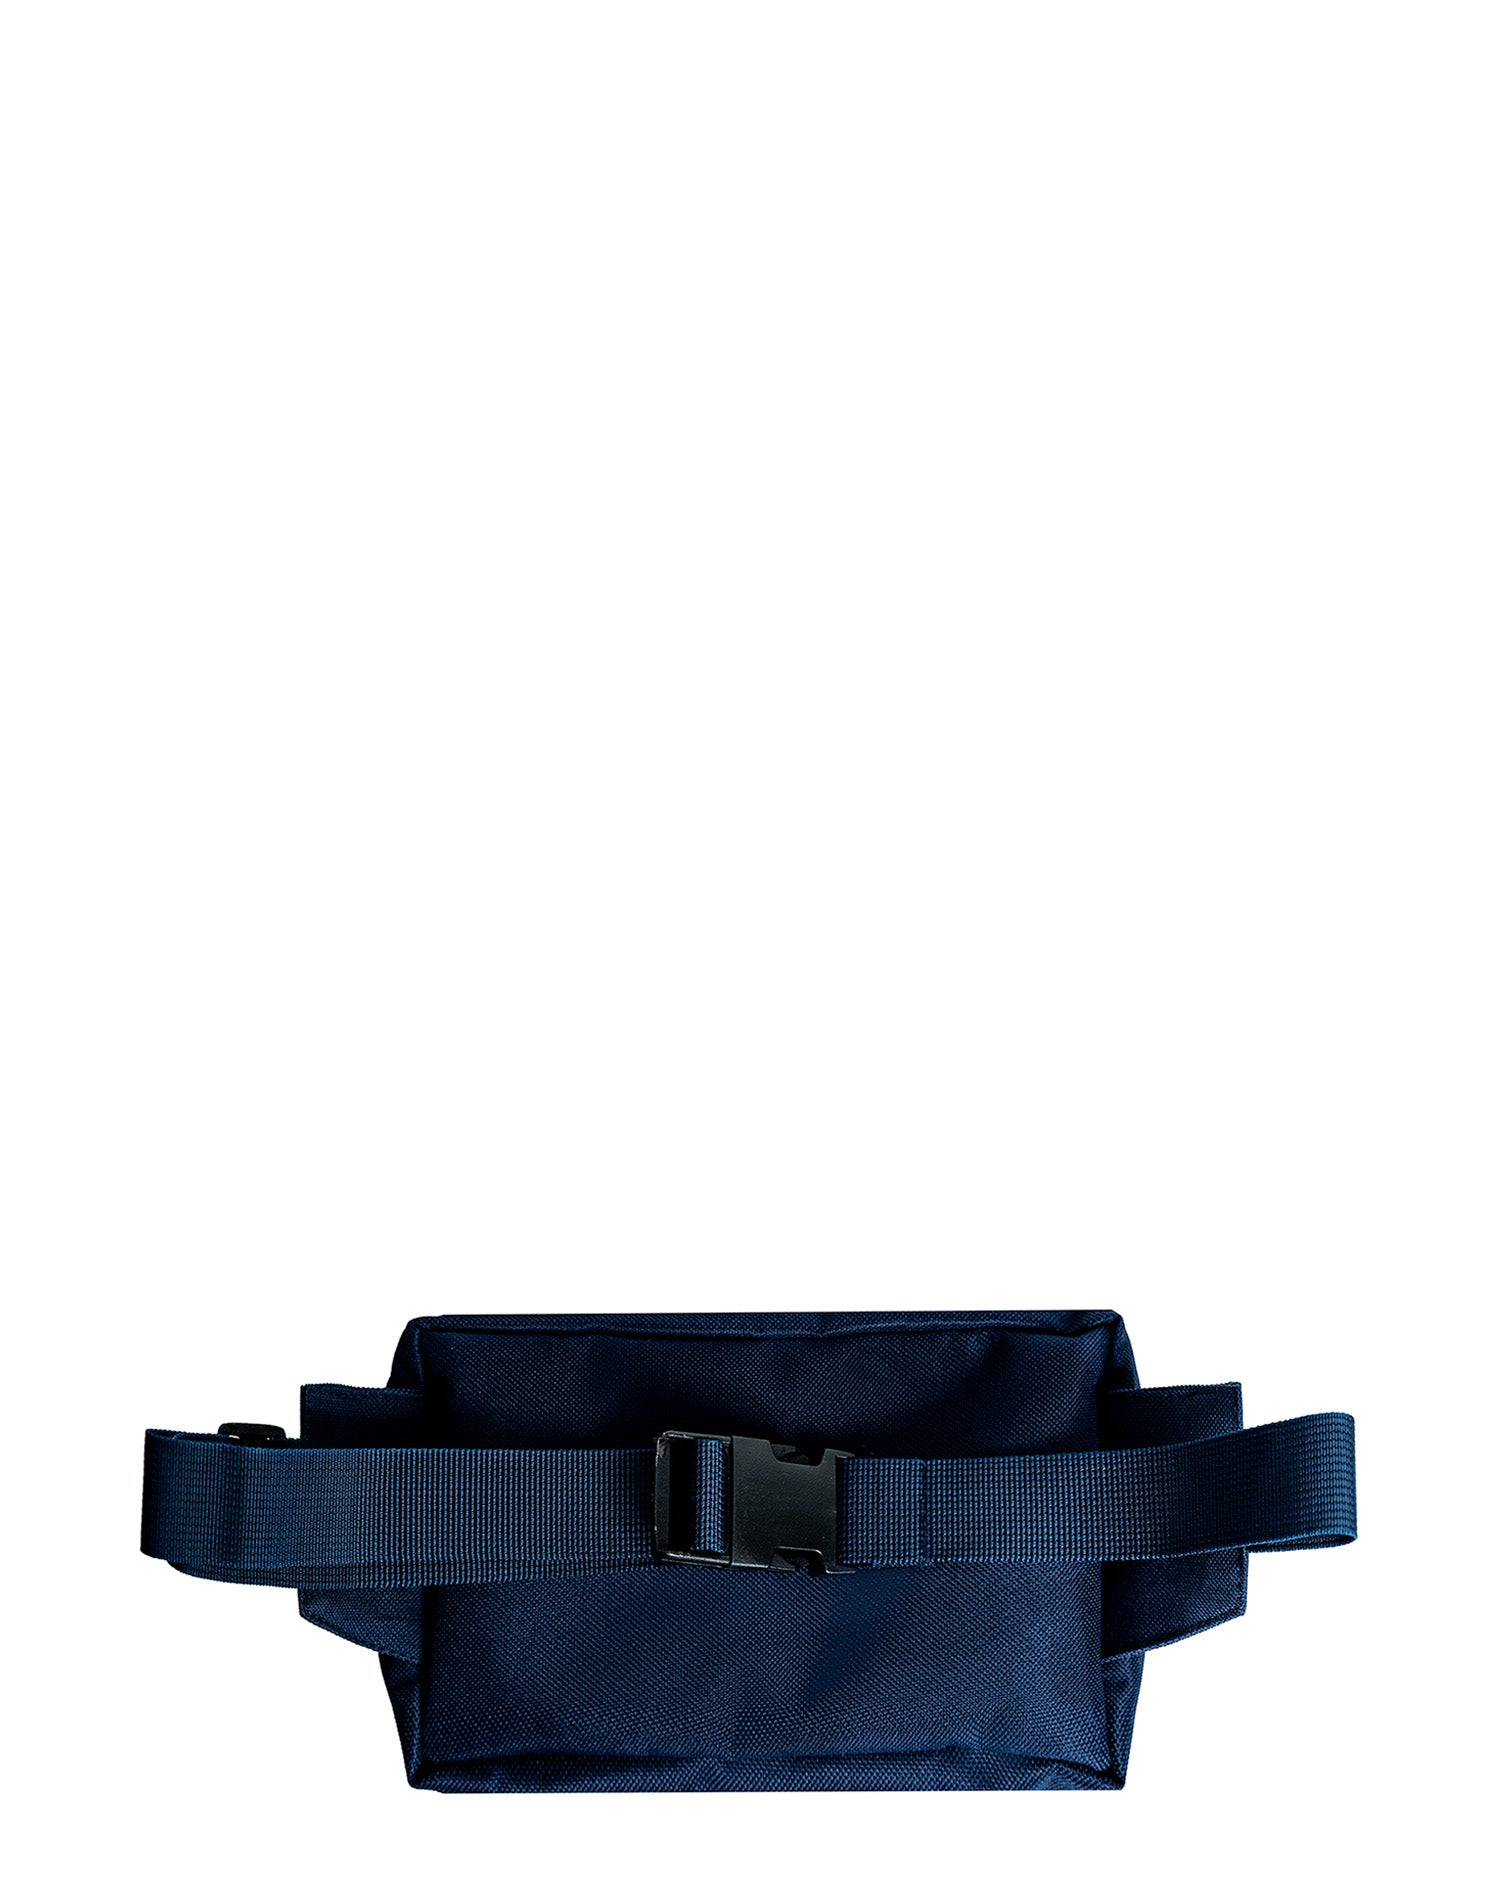 Navy Blue Canvas Tool Belt Sling Bag.藏青色帆布斜揹腰包